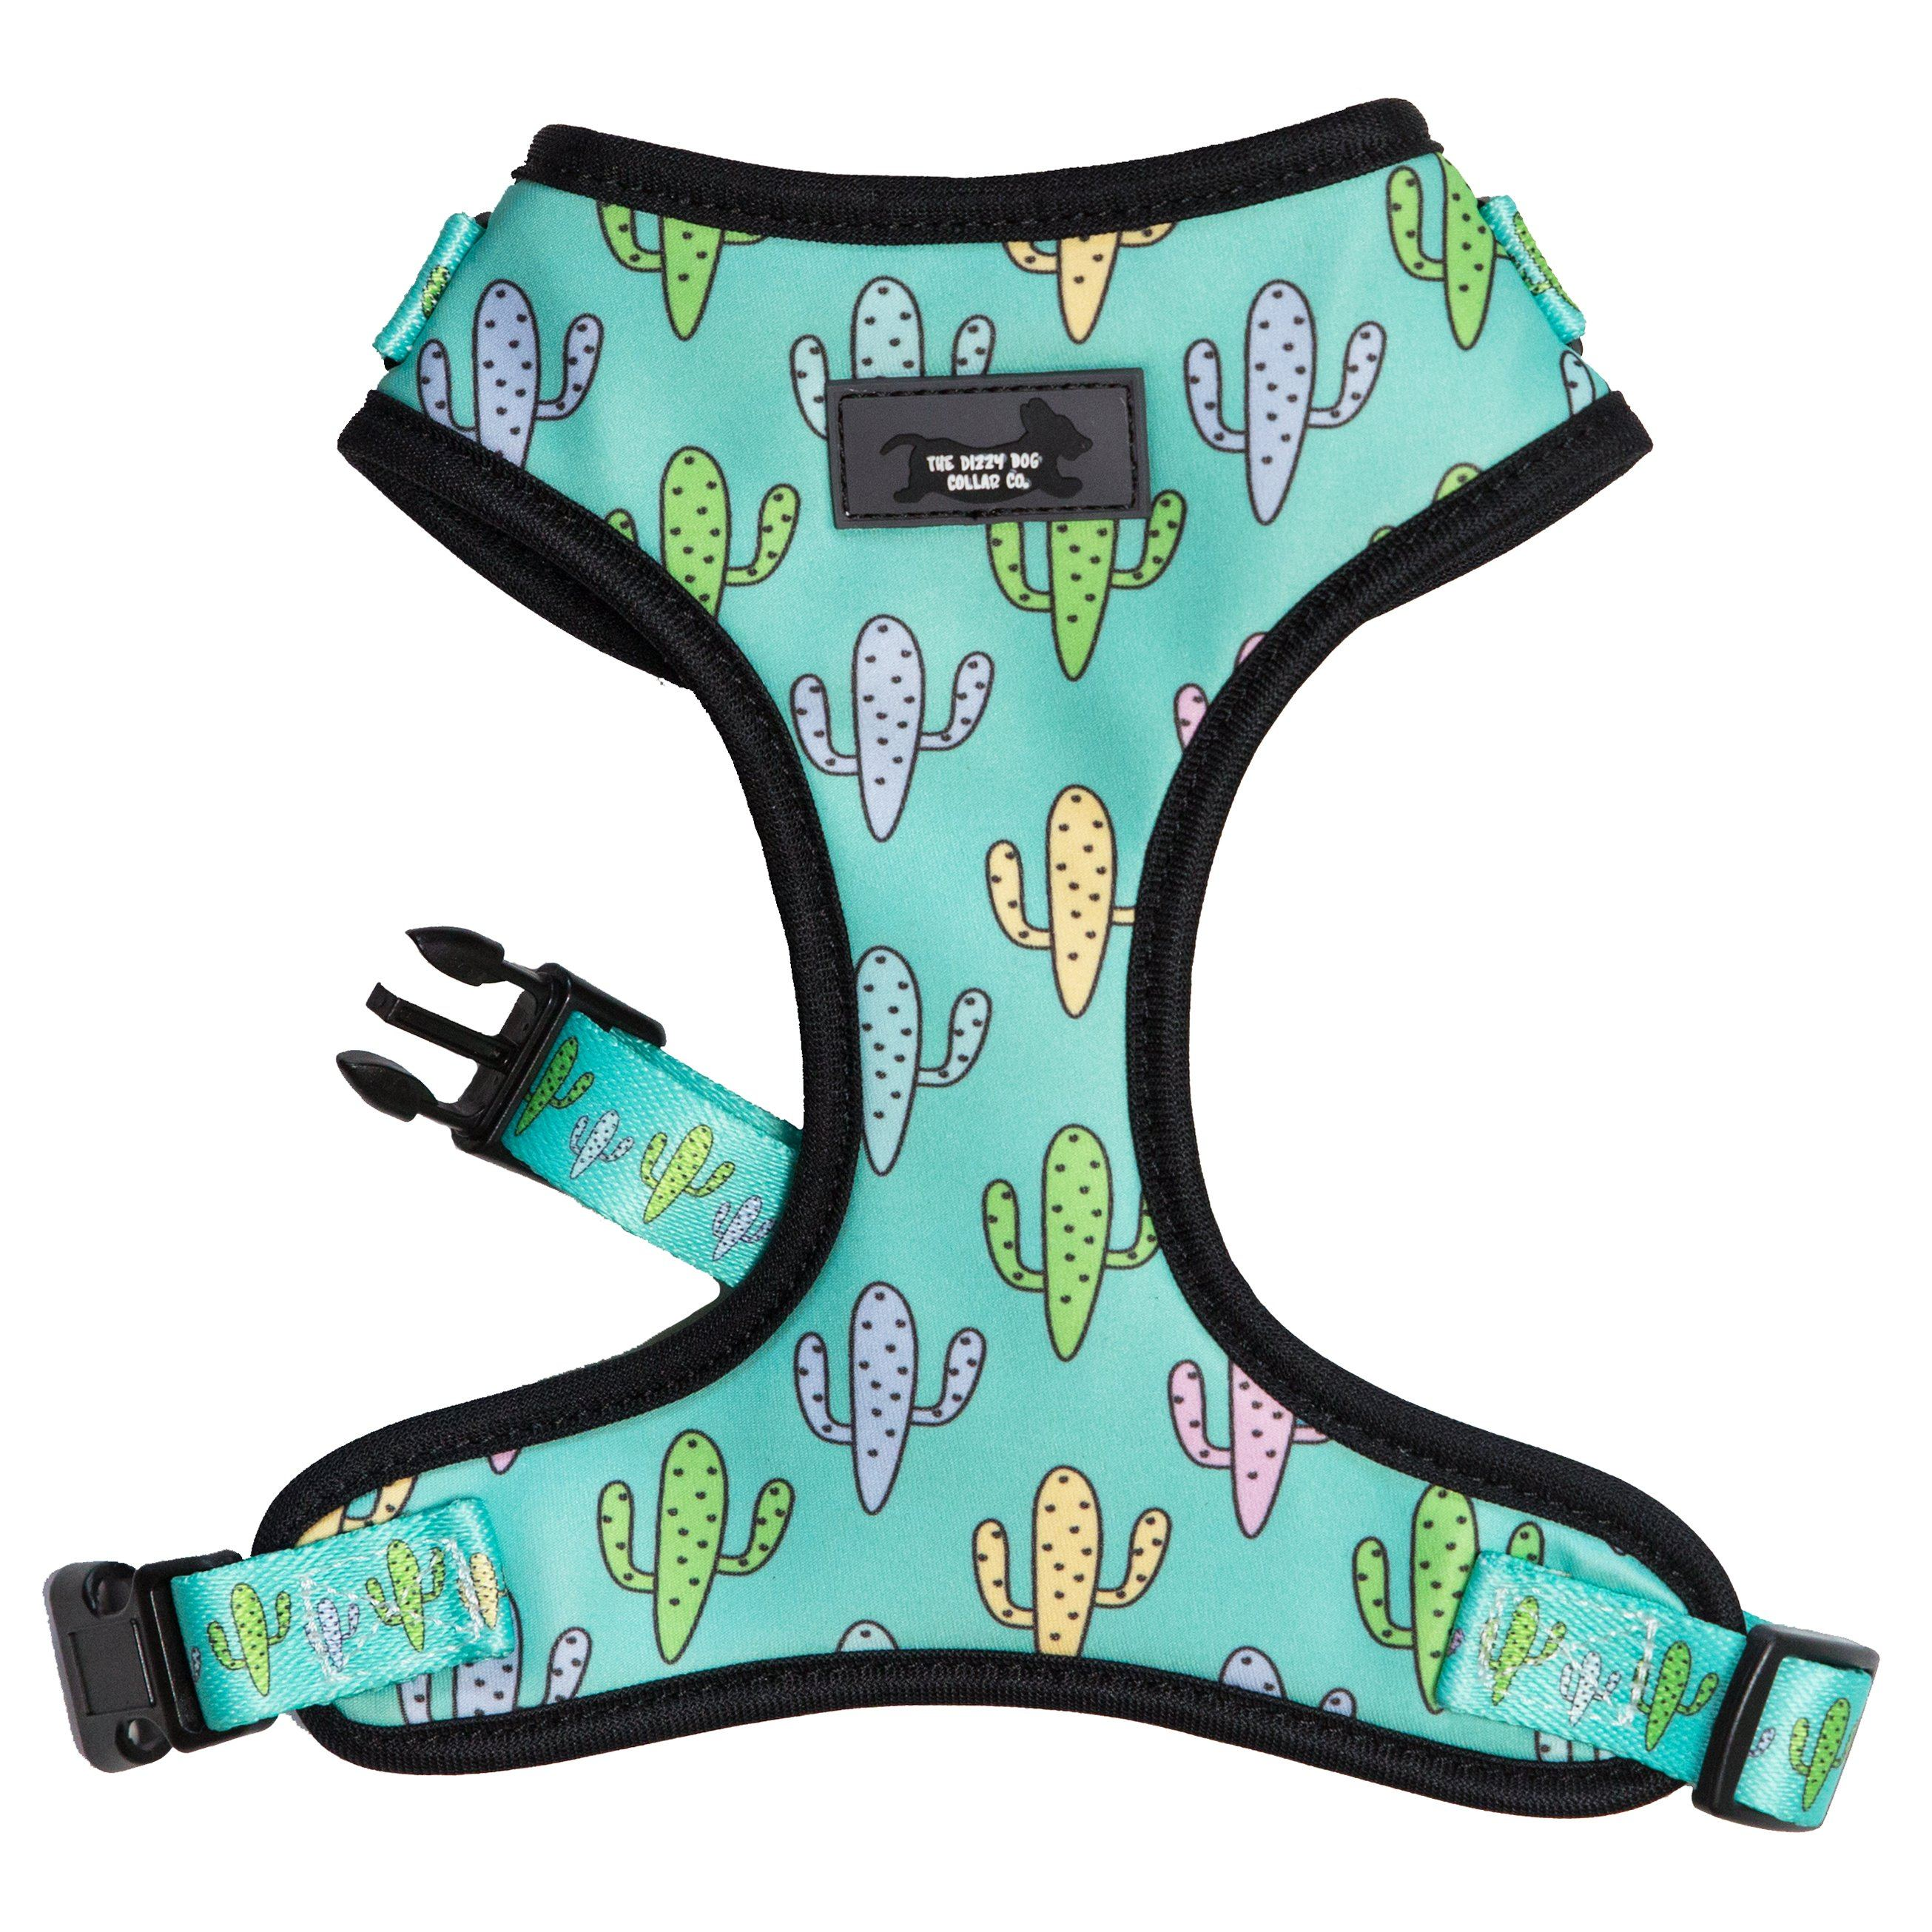 adjustable dog harness, dog harness, cactus dog harness, pastel dog harness,  best dog harness online, cute dog harness